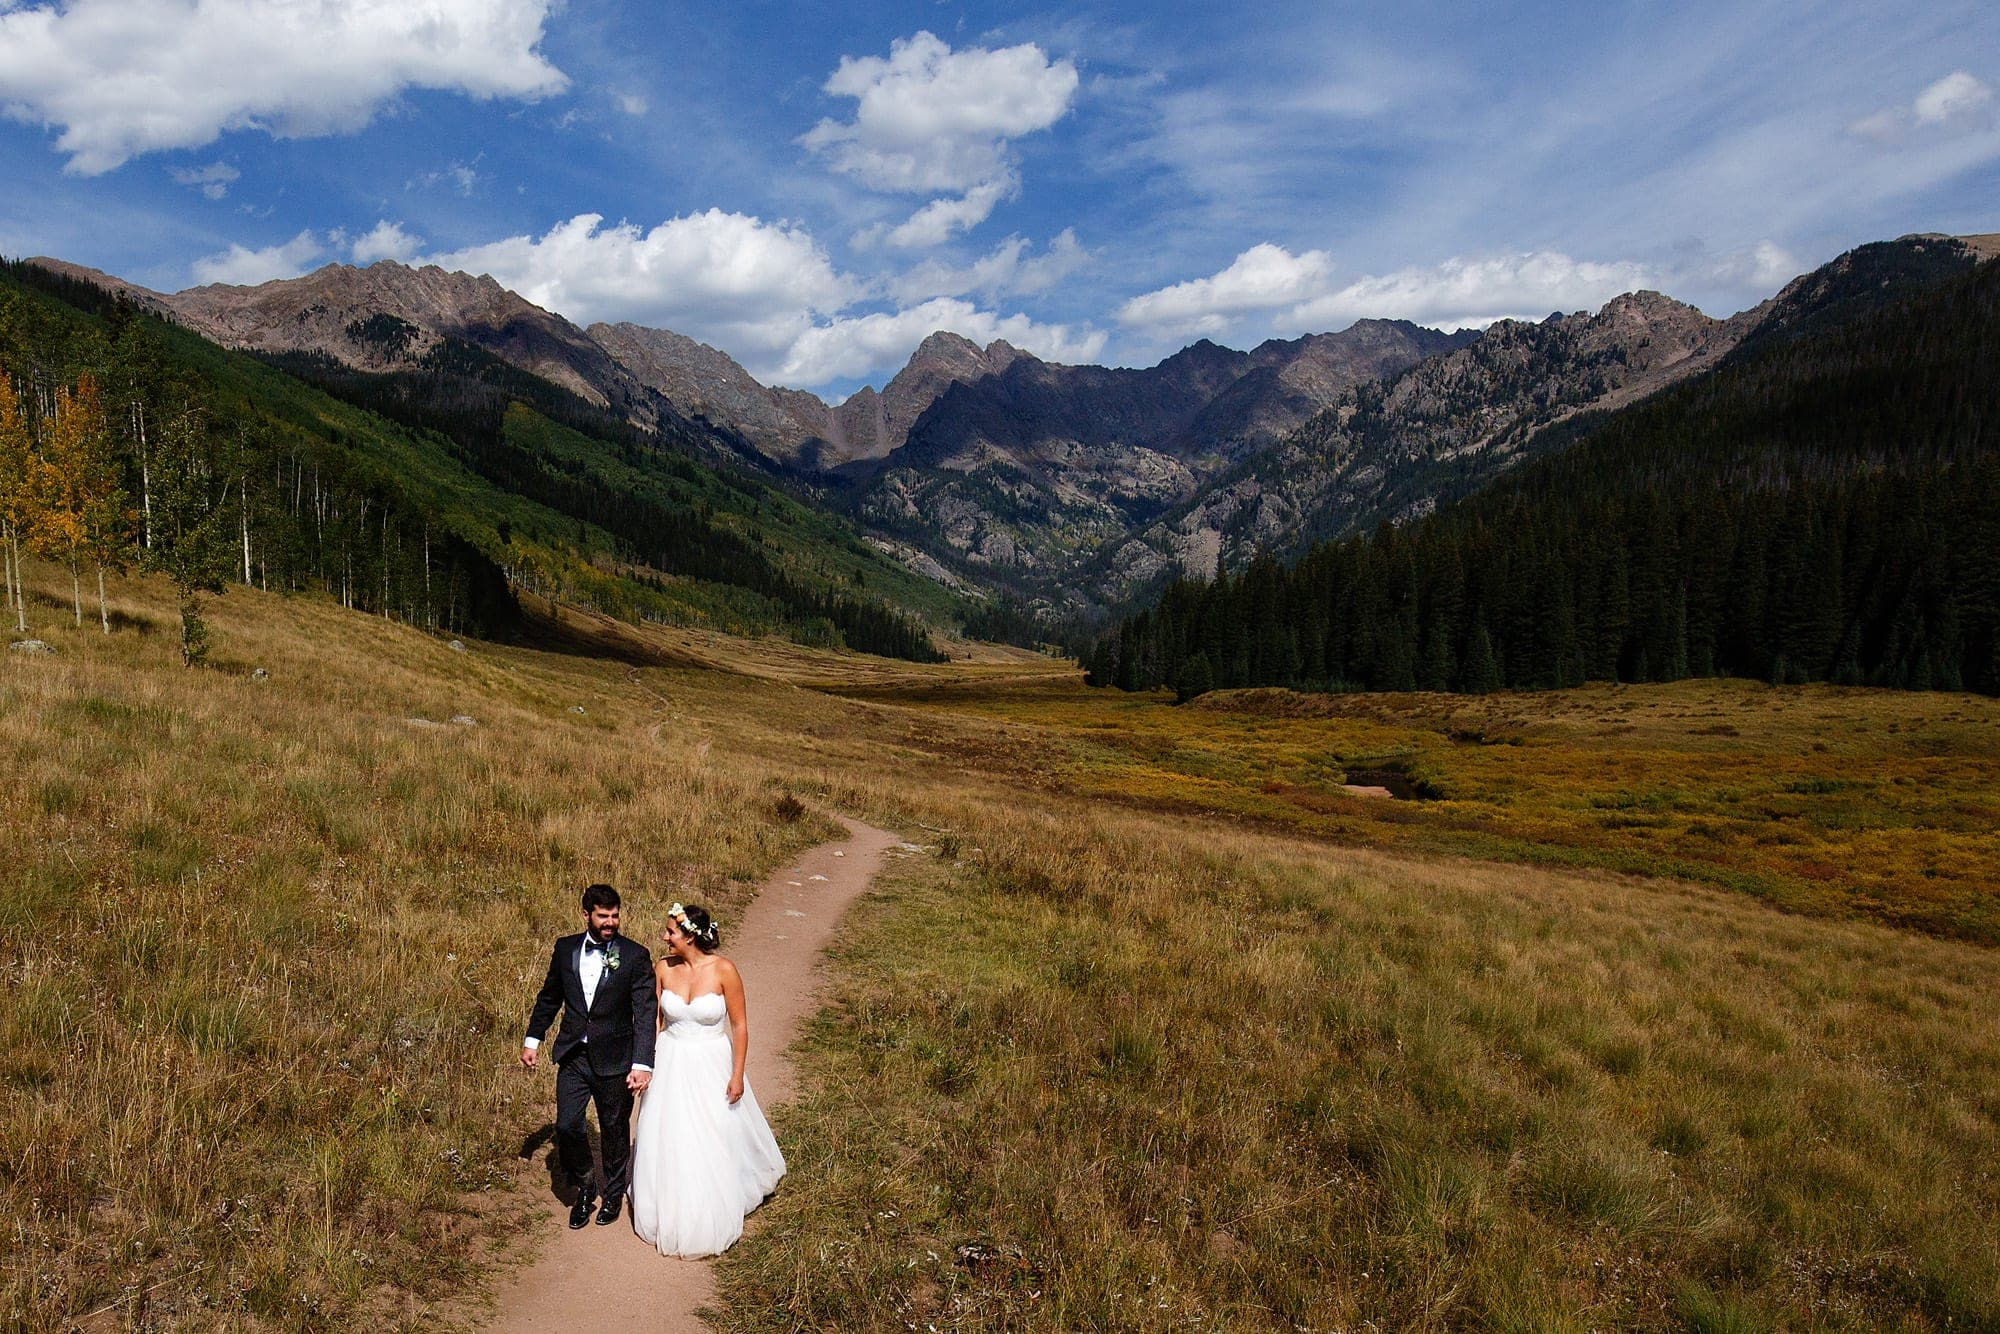 The bride and groom walk along the hiking path at Piney River Ranch with the Gore mountain range in the background near Vail, Colorado.